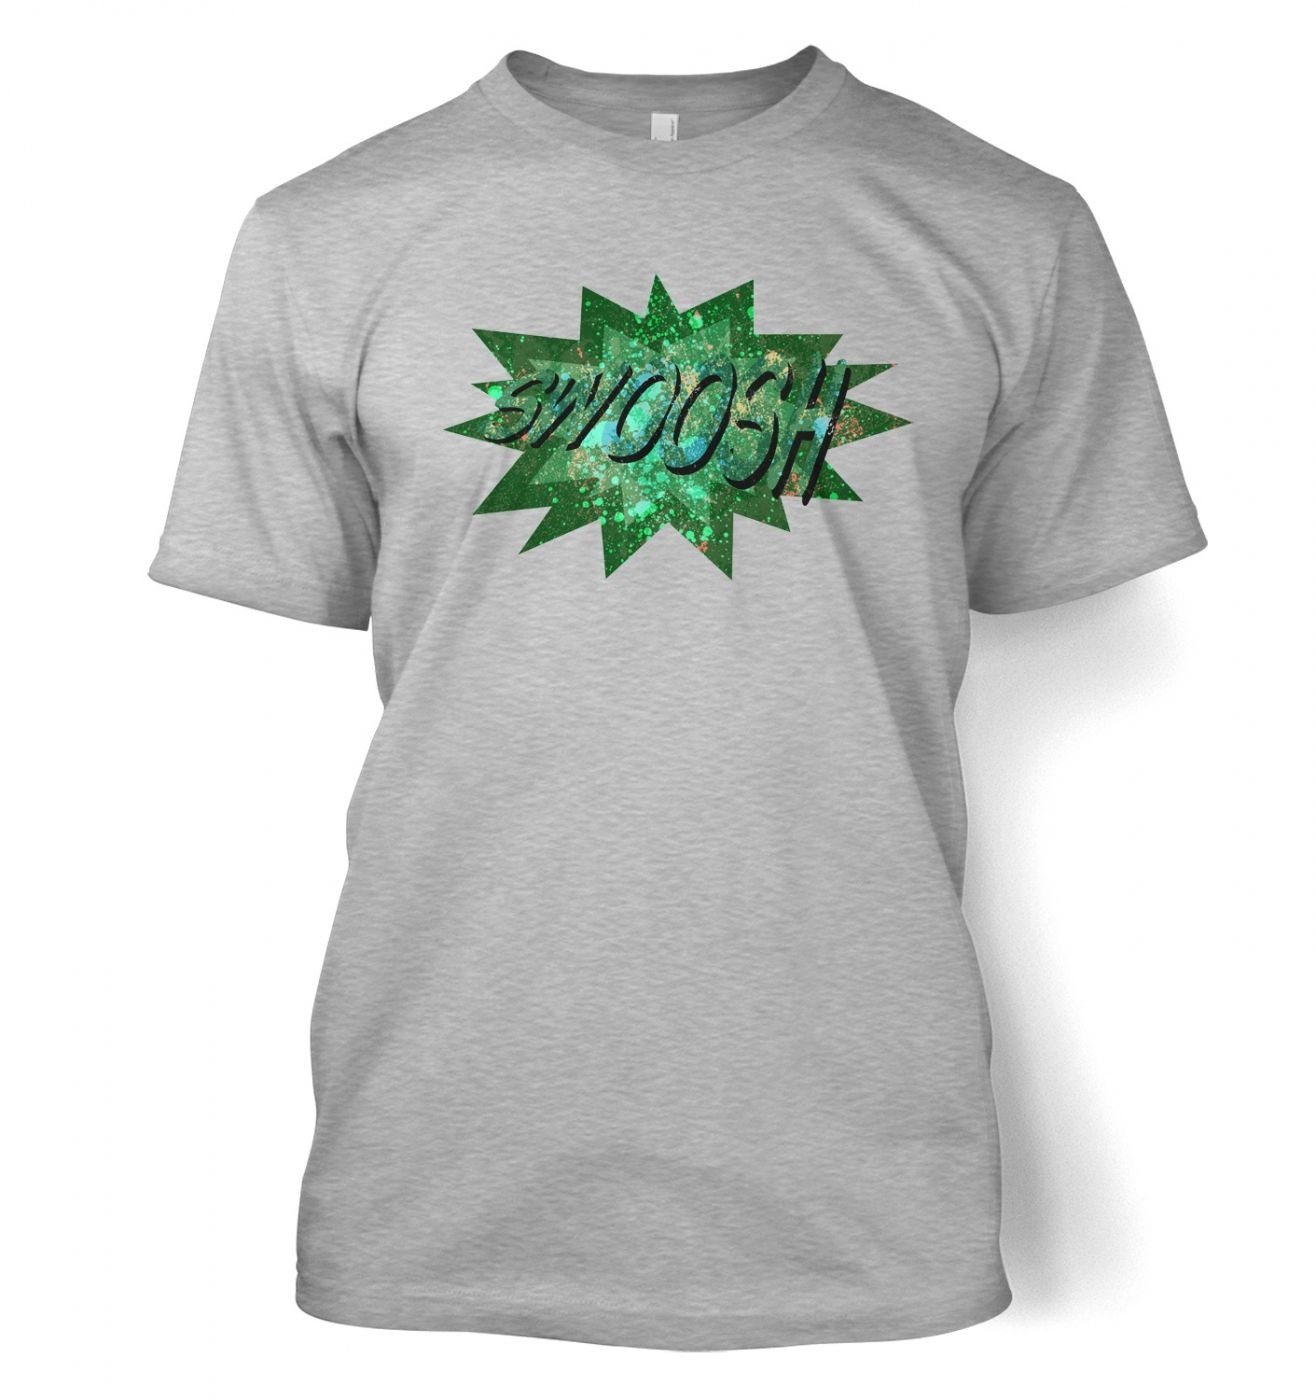 Swoosh Men's T-shirt